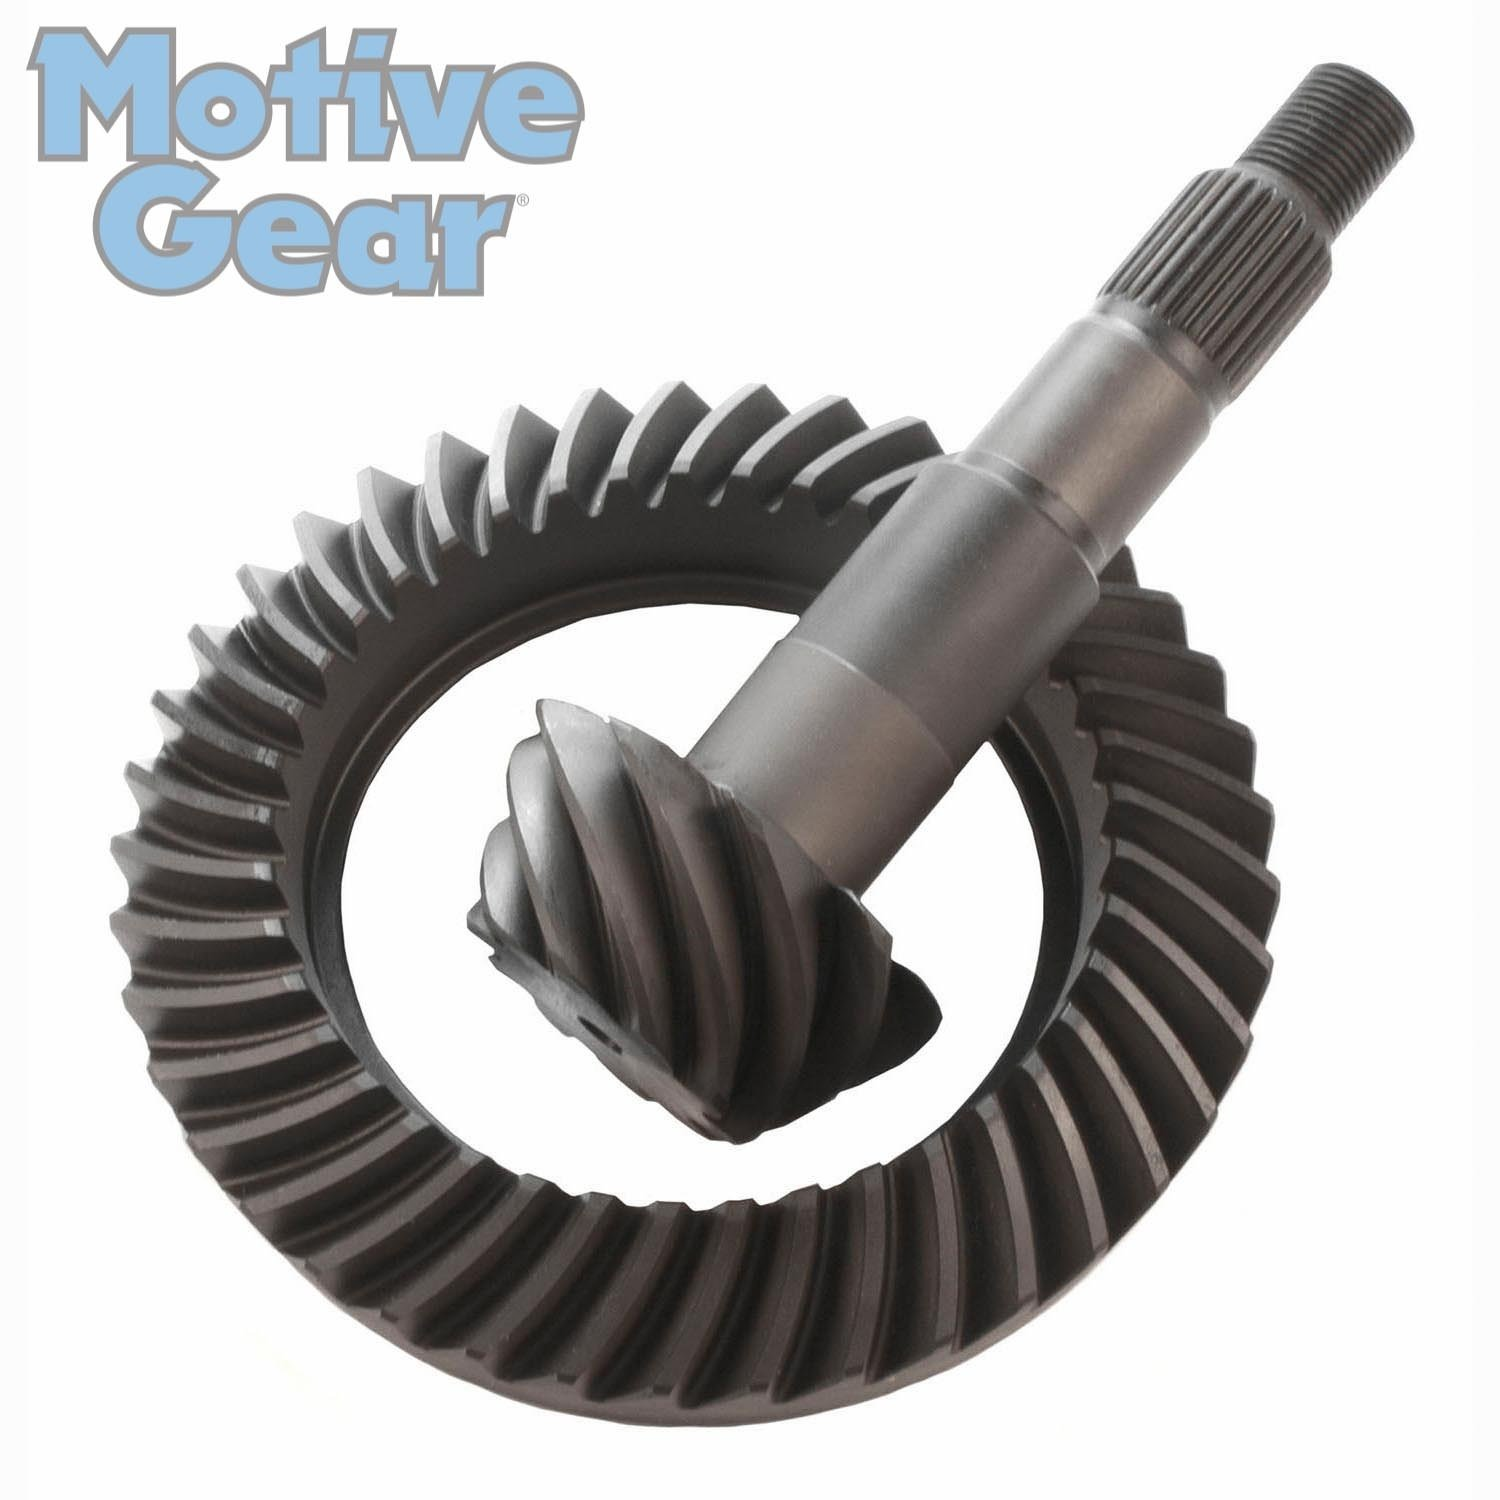 Motive Gear GM7.5-456 Ring and Pinion (GM 7.5' & 7.625' Style, 4.56 Ratio)